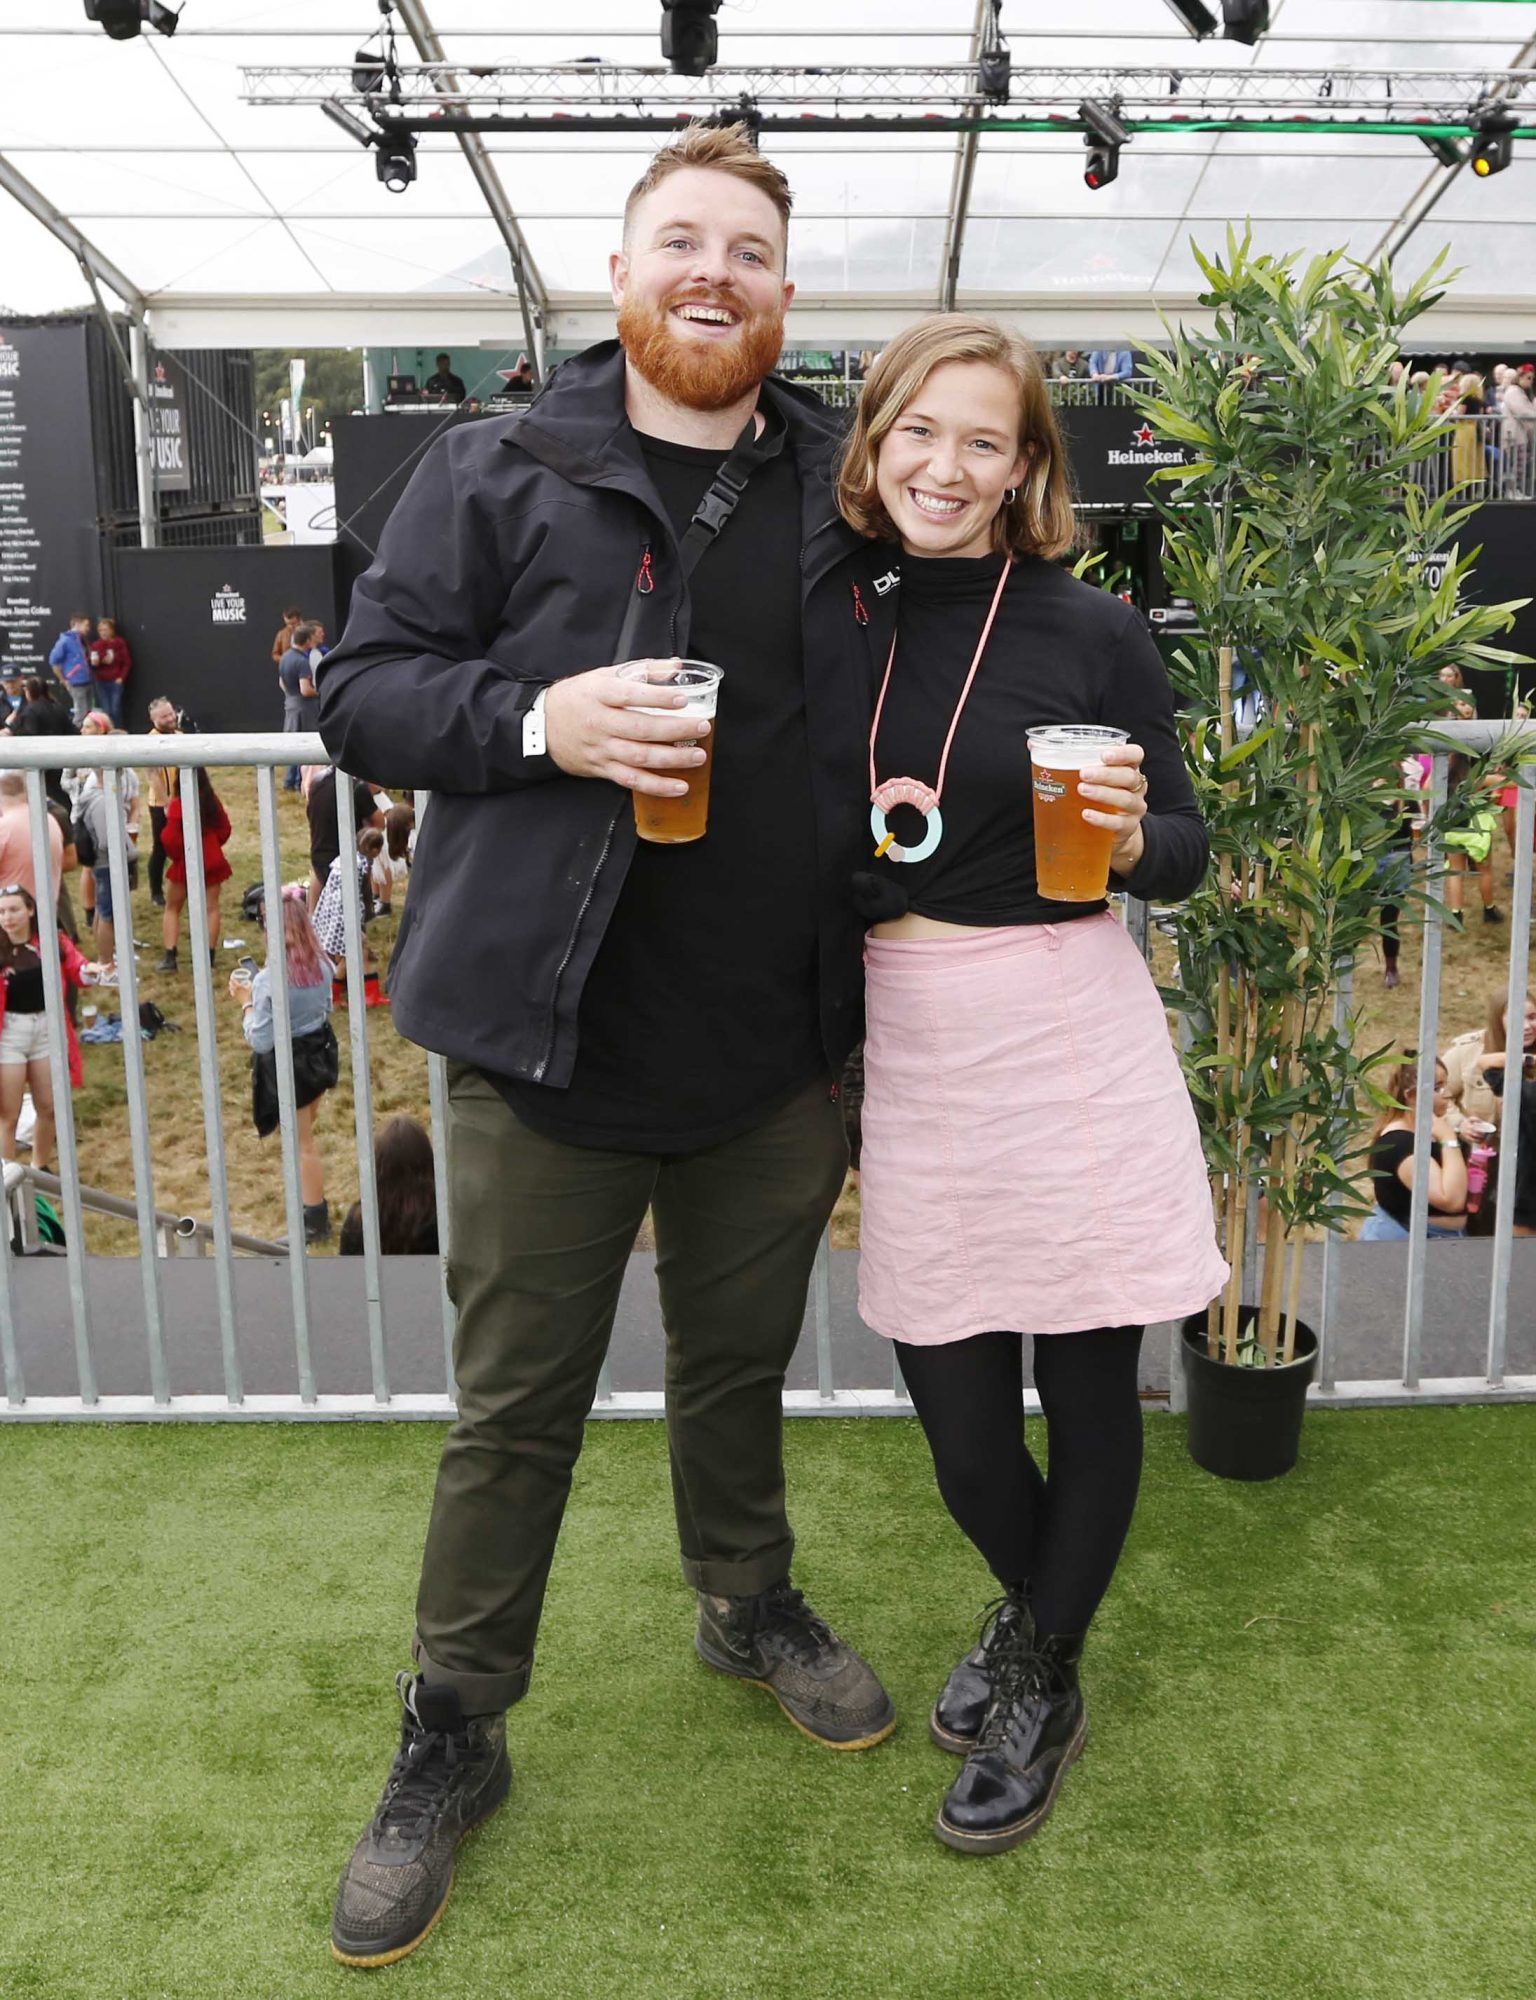 NO REPRO FEE 30/08/2019 Heineken Live Your Music Stage at Electric Picnic 2019. Pictured are (LtoR) Taz kelleher and Marcus O'Laoire at the Heineken Live Your Music Stage at Electric Picnic 2019. This year's area is an enormous structure on two levels, with a glass roof that will keep festival-goers dry but let them dance beneath the sun and stars! The immersive and interactive lightshow has been reimagined for 2019 which, combined with the state-of-the-art soundsystem, make Live Your Music the most impressive festival stage in the country. Photo: Sasko Lazarov/Phorocall Ireland